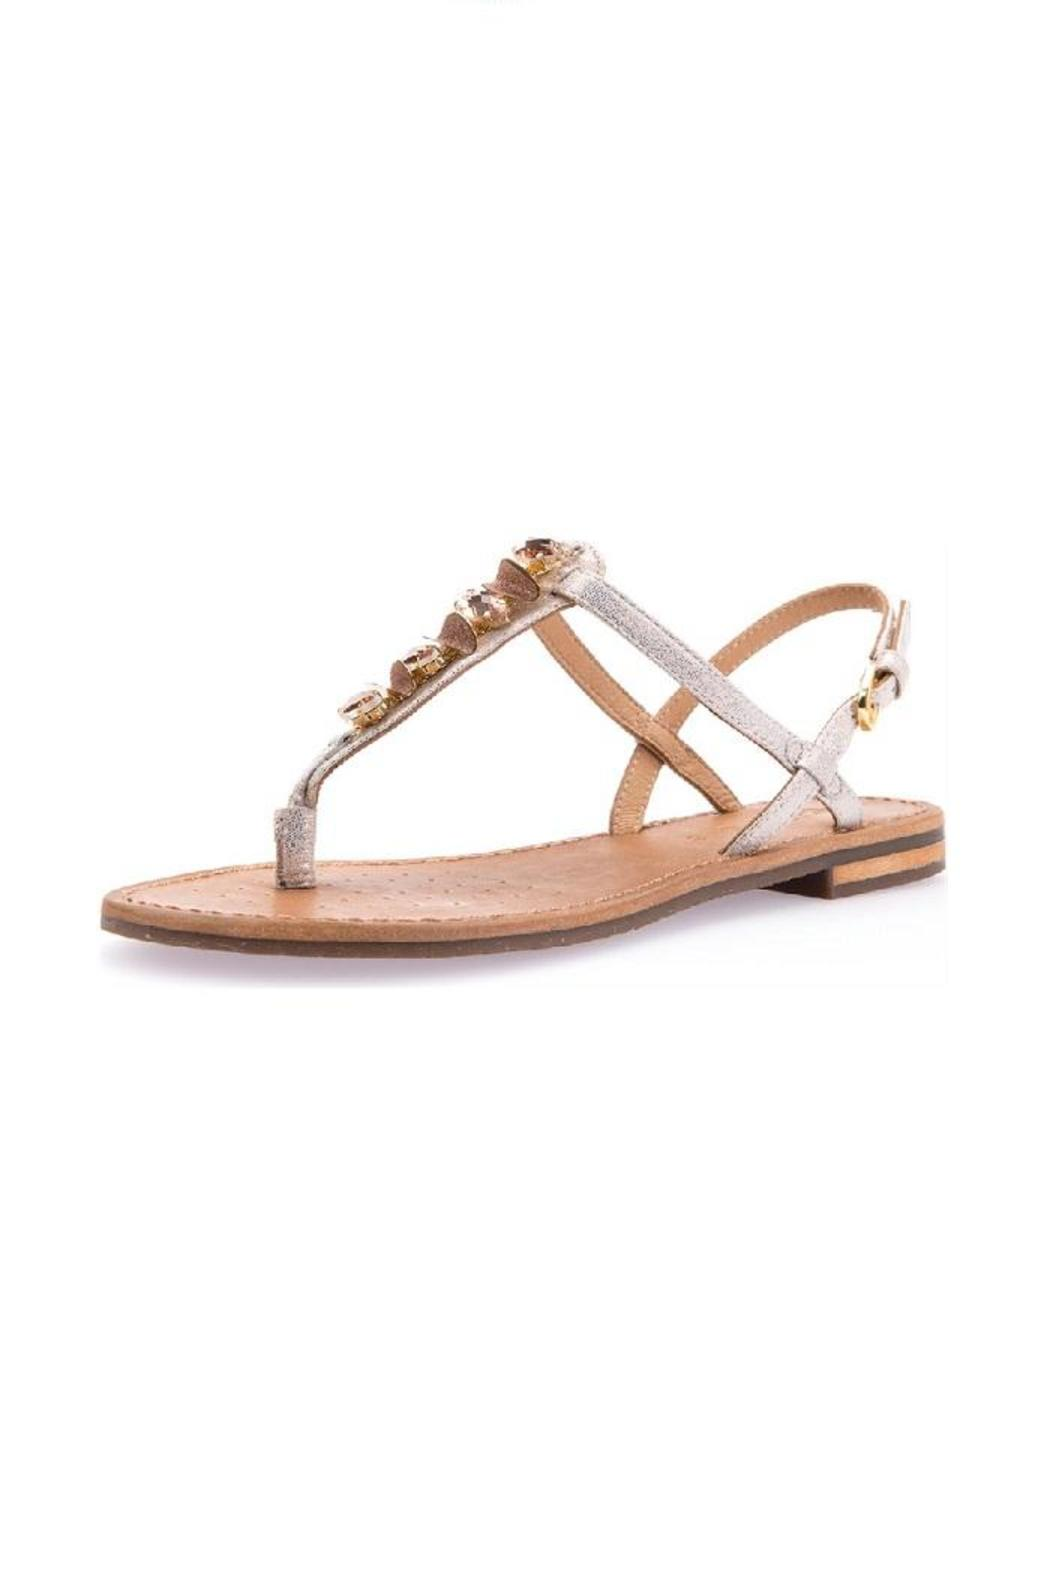 bd9ccca743 Geox Rose-Gold Sandal from Canada by Modern Sole — Shoptiques